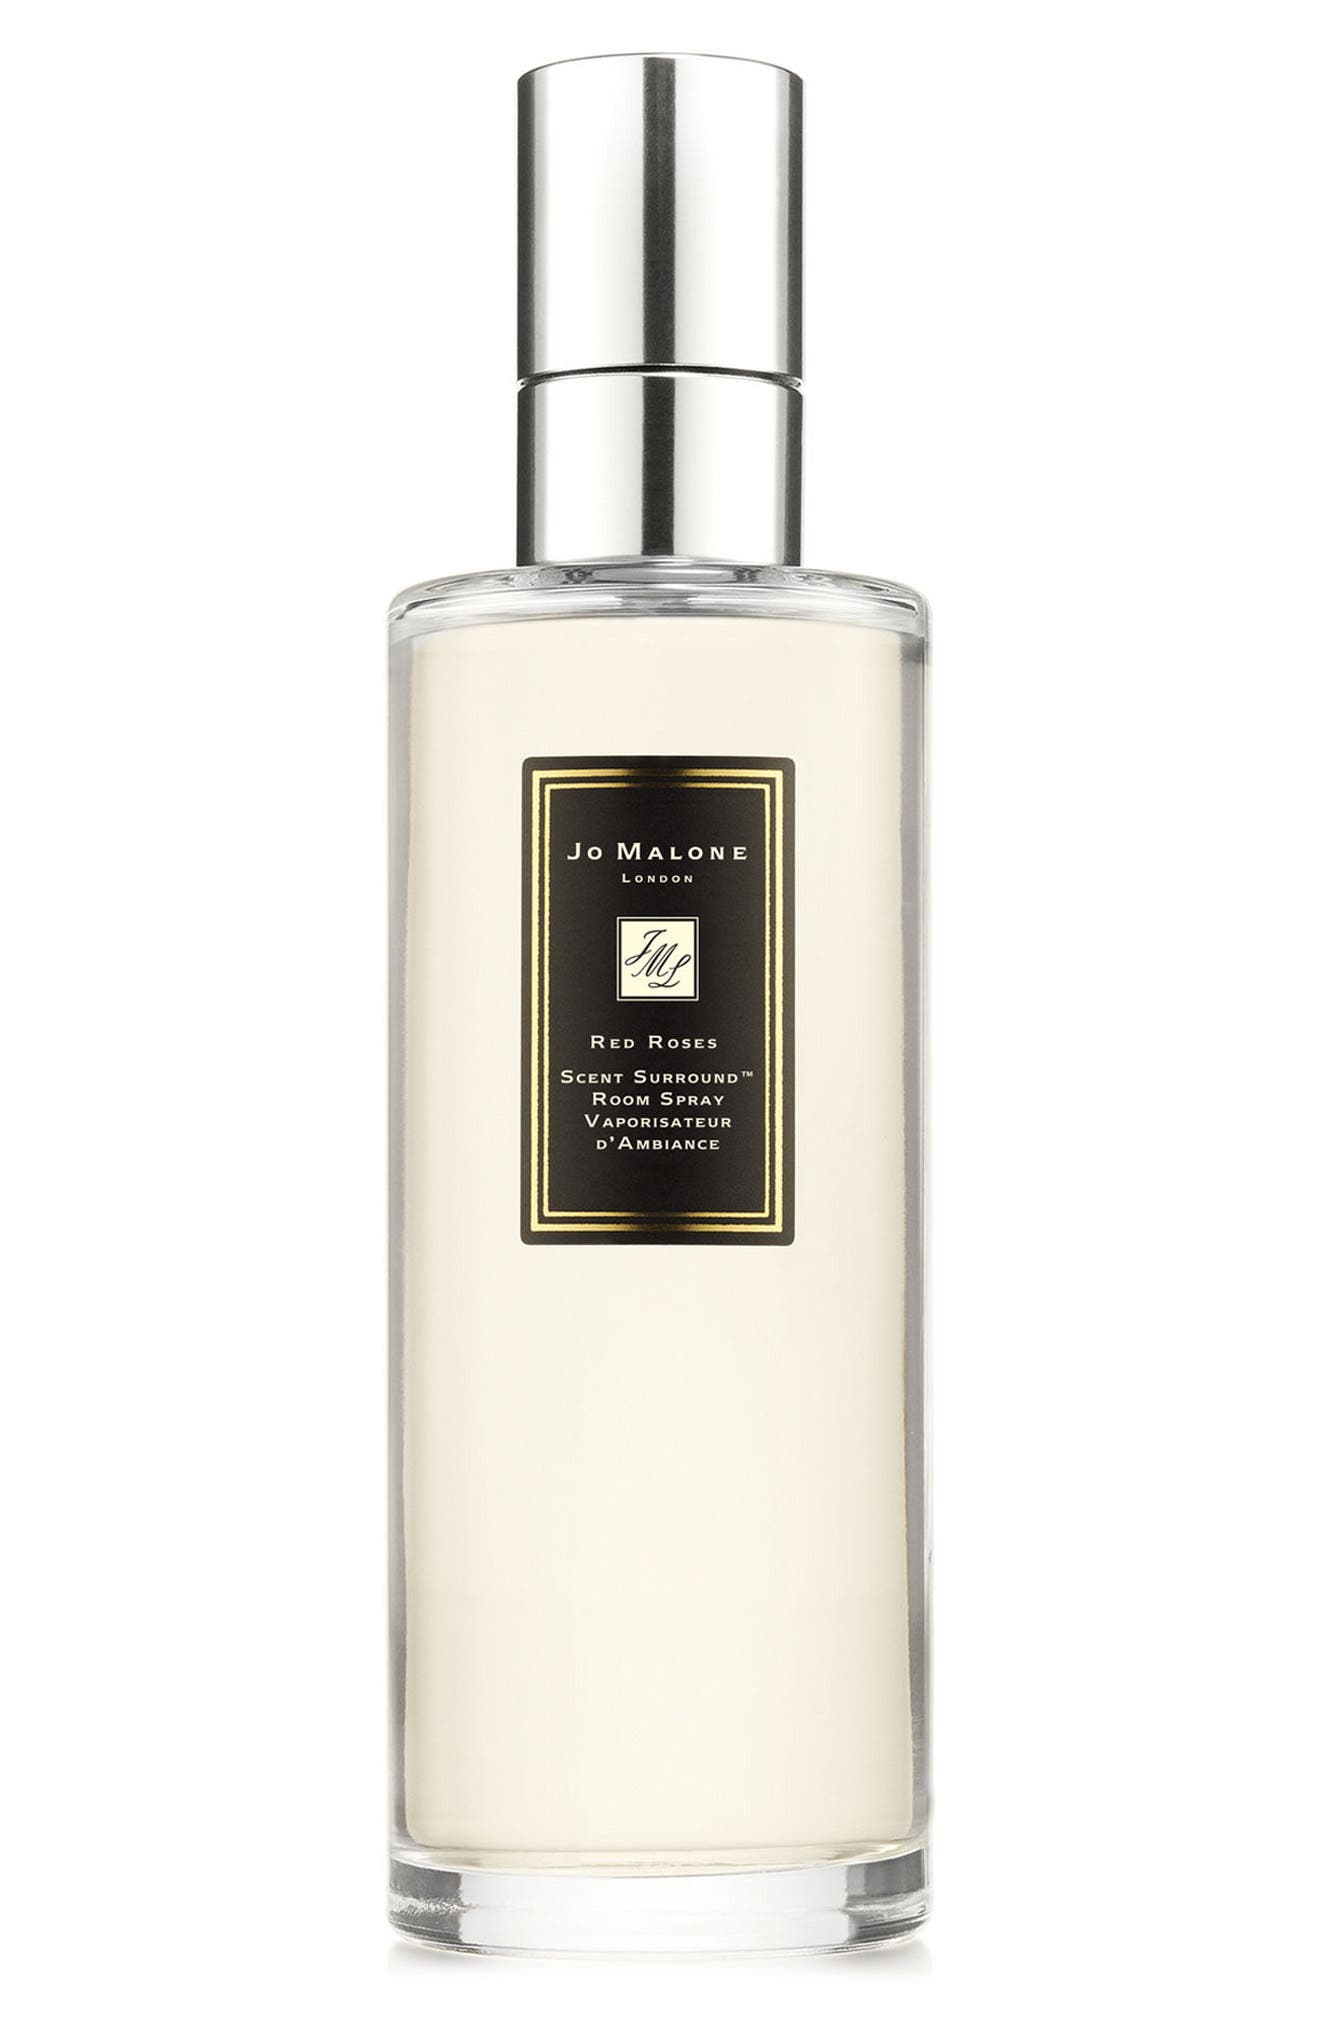 Alternate Image 1 Selected - Jo Malone™ 'Red Roses' Scent Surround™ Room Spray